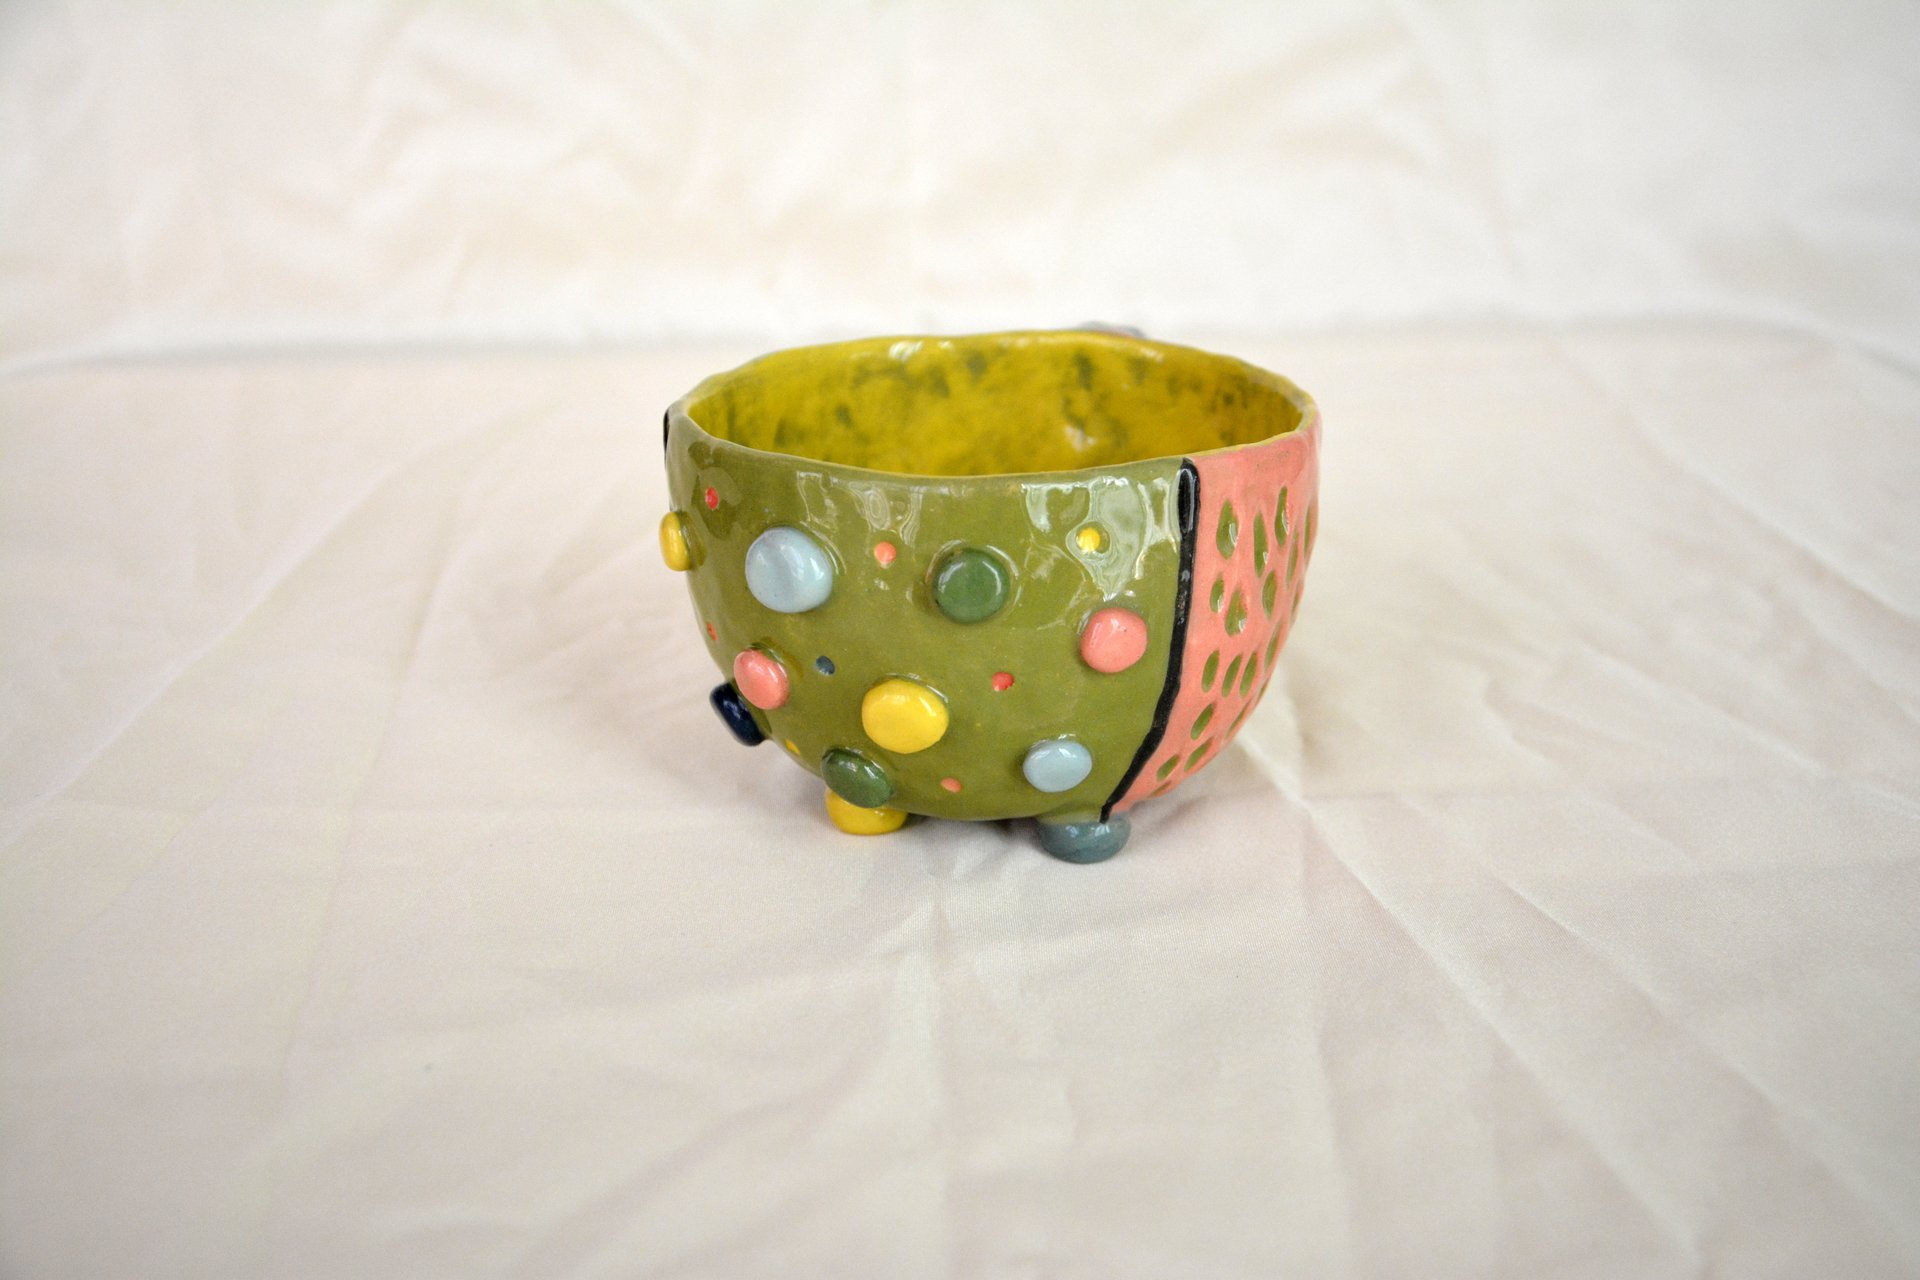 Bright color mug - Cups, glasses, mugs, height - 9 cm, volume - 350 ml, photo 3 of 3.